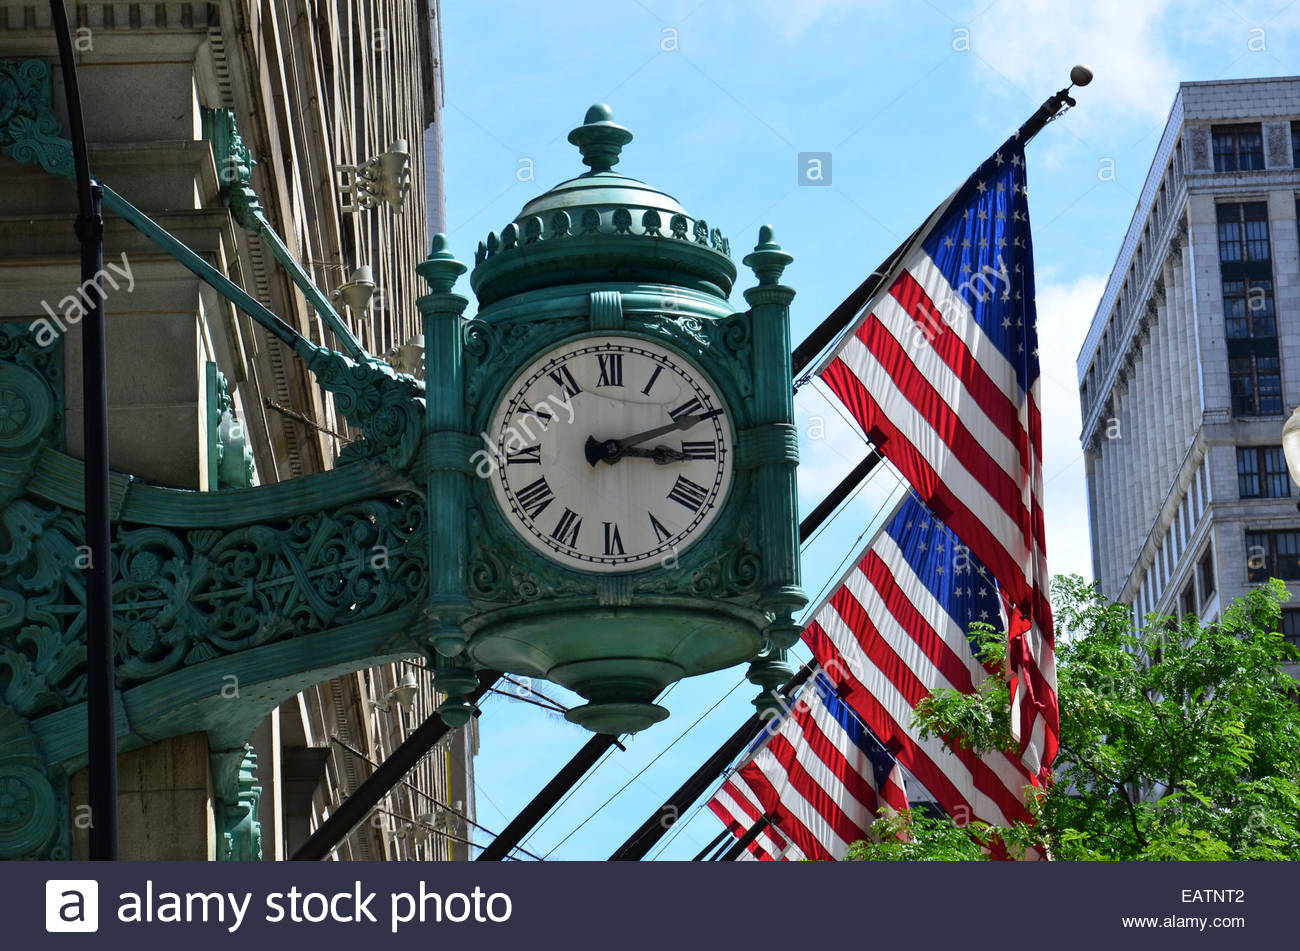 A clock with a white face and Roman numerals on the Macy's building. - Stock Image